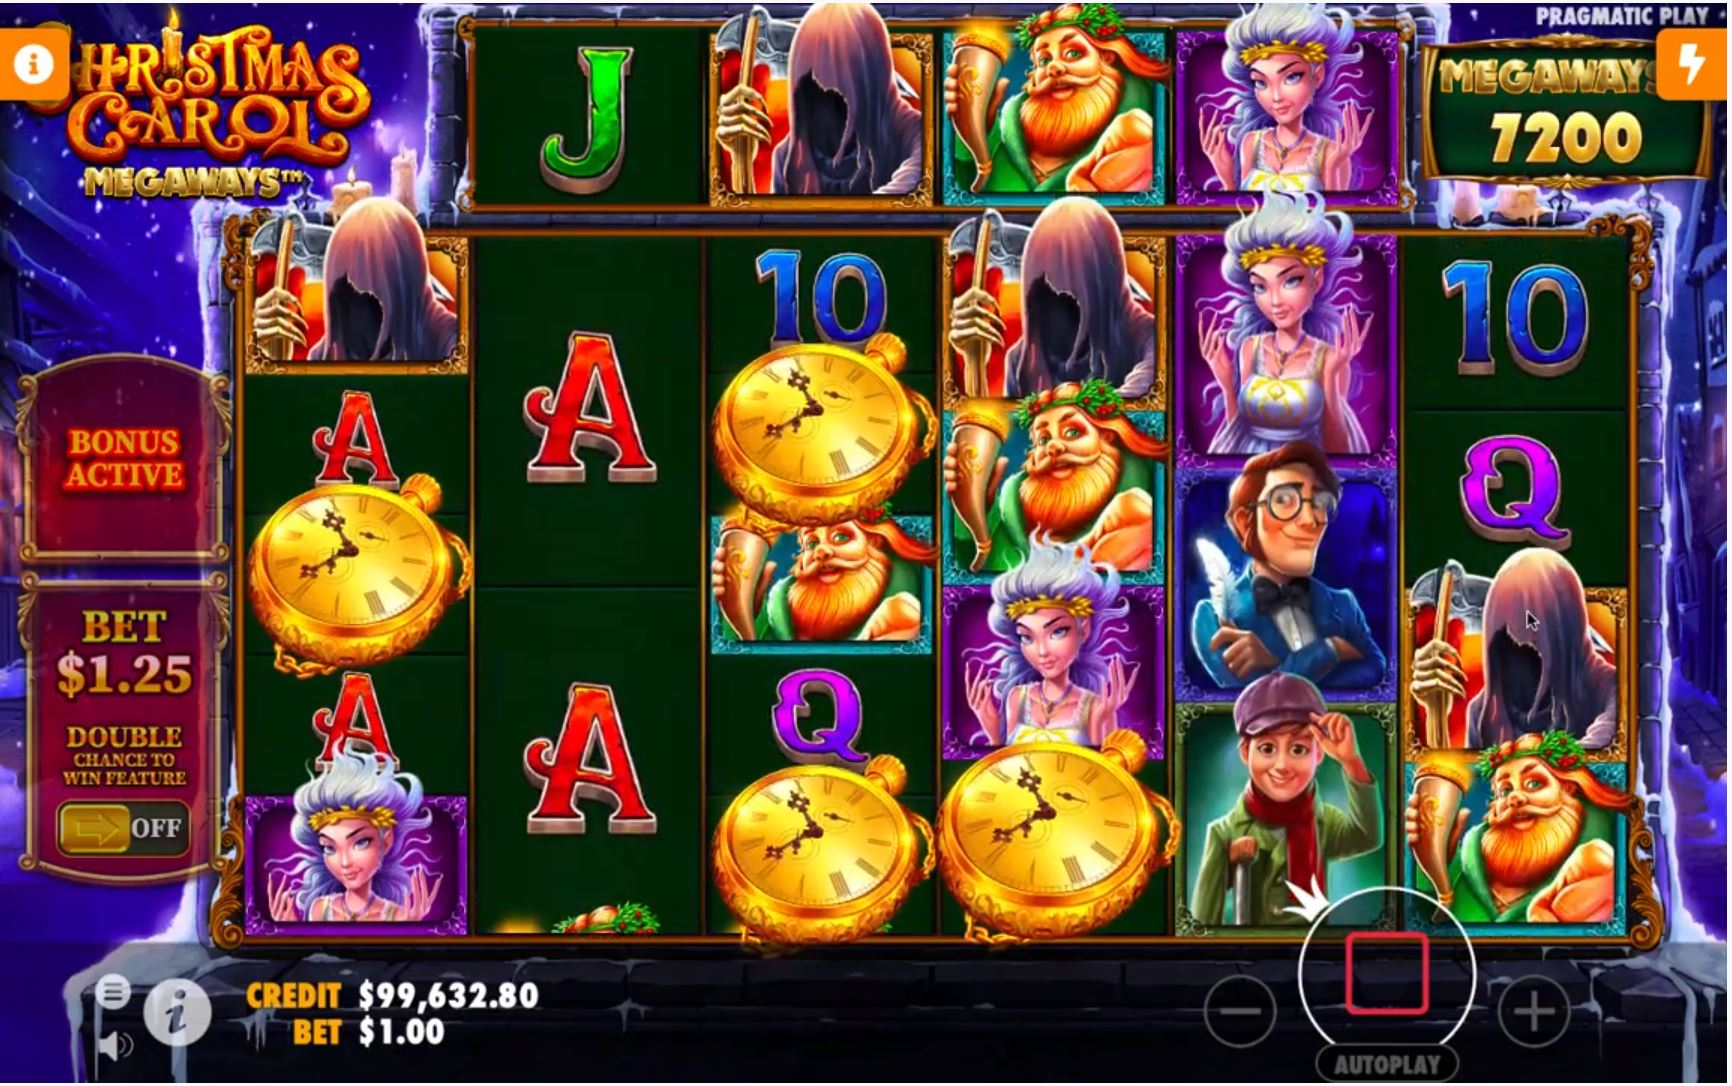 christmas carol megaways slot by pragmatic play